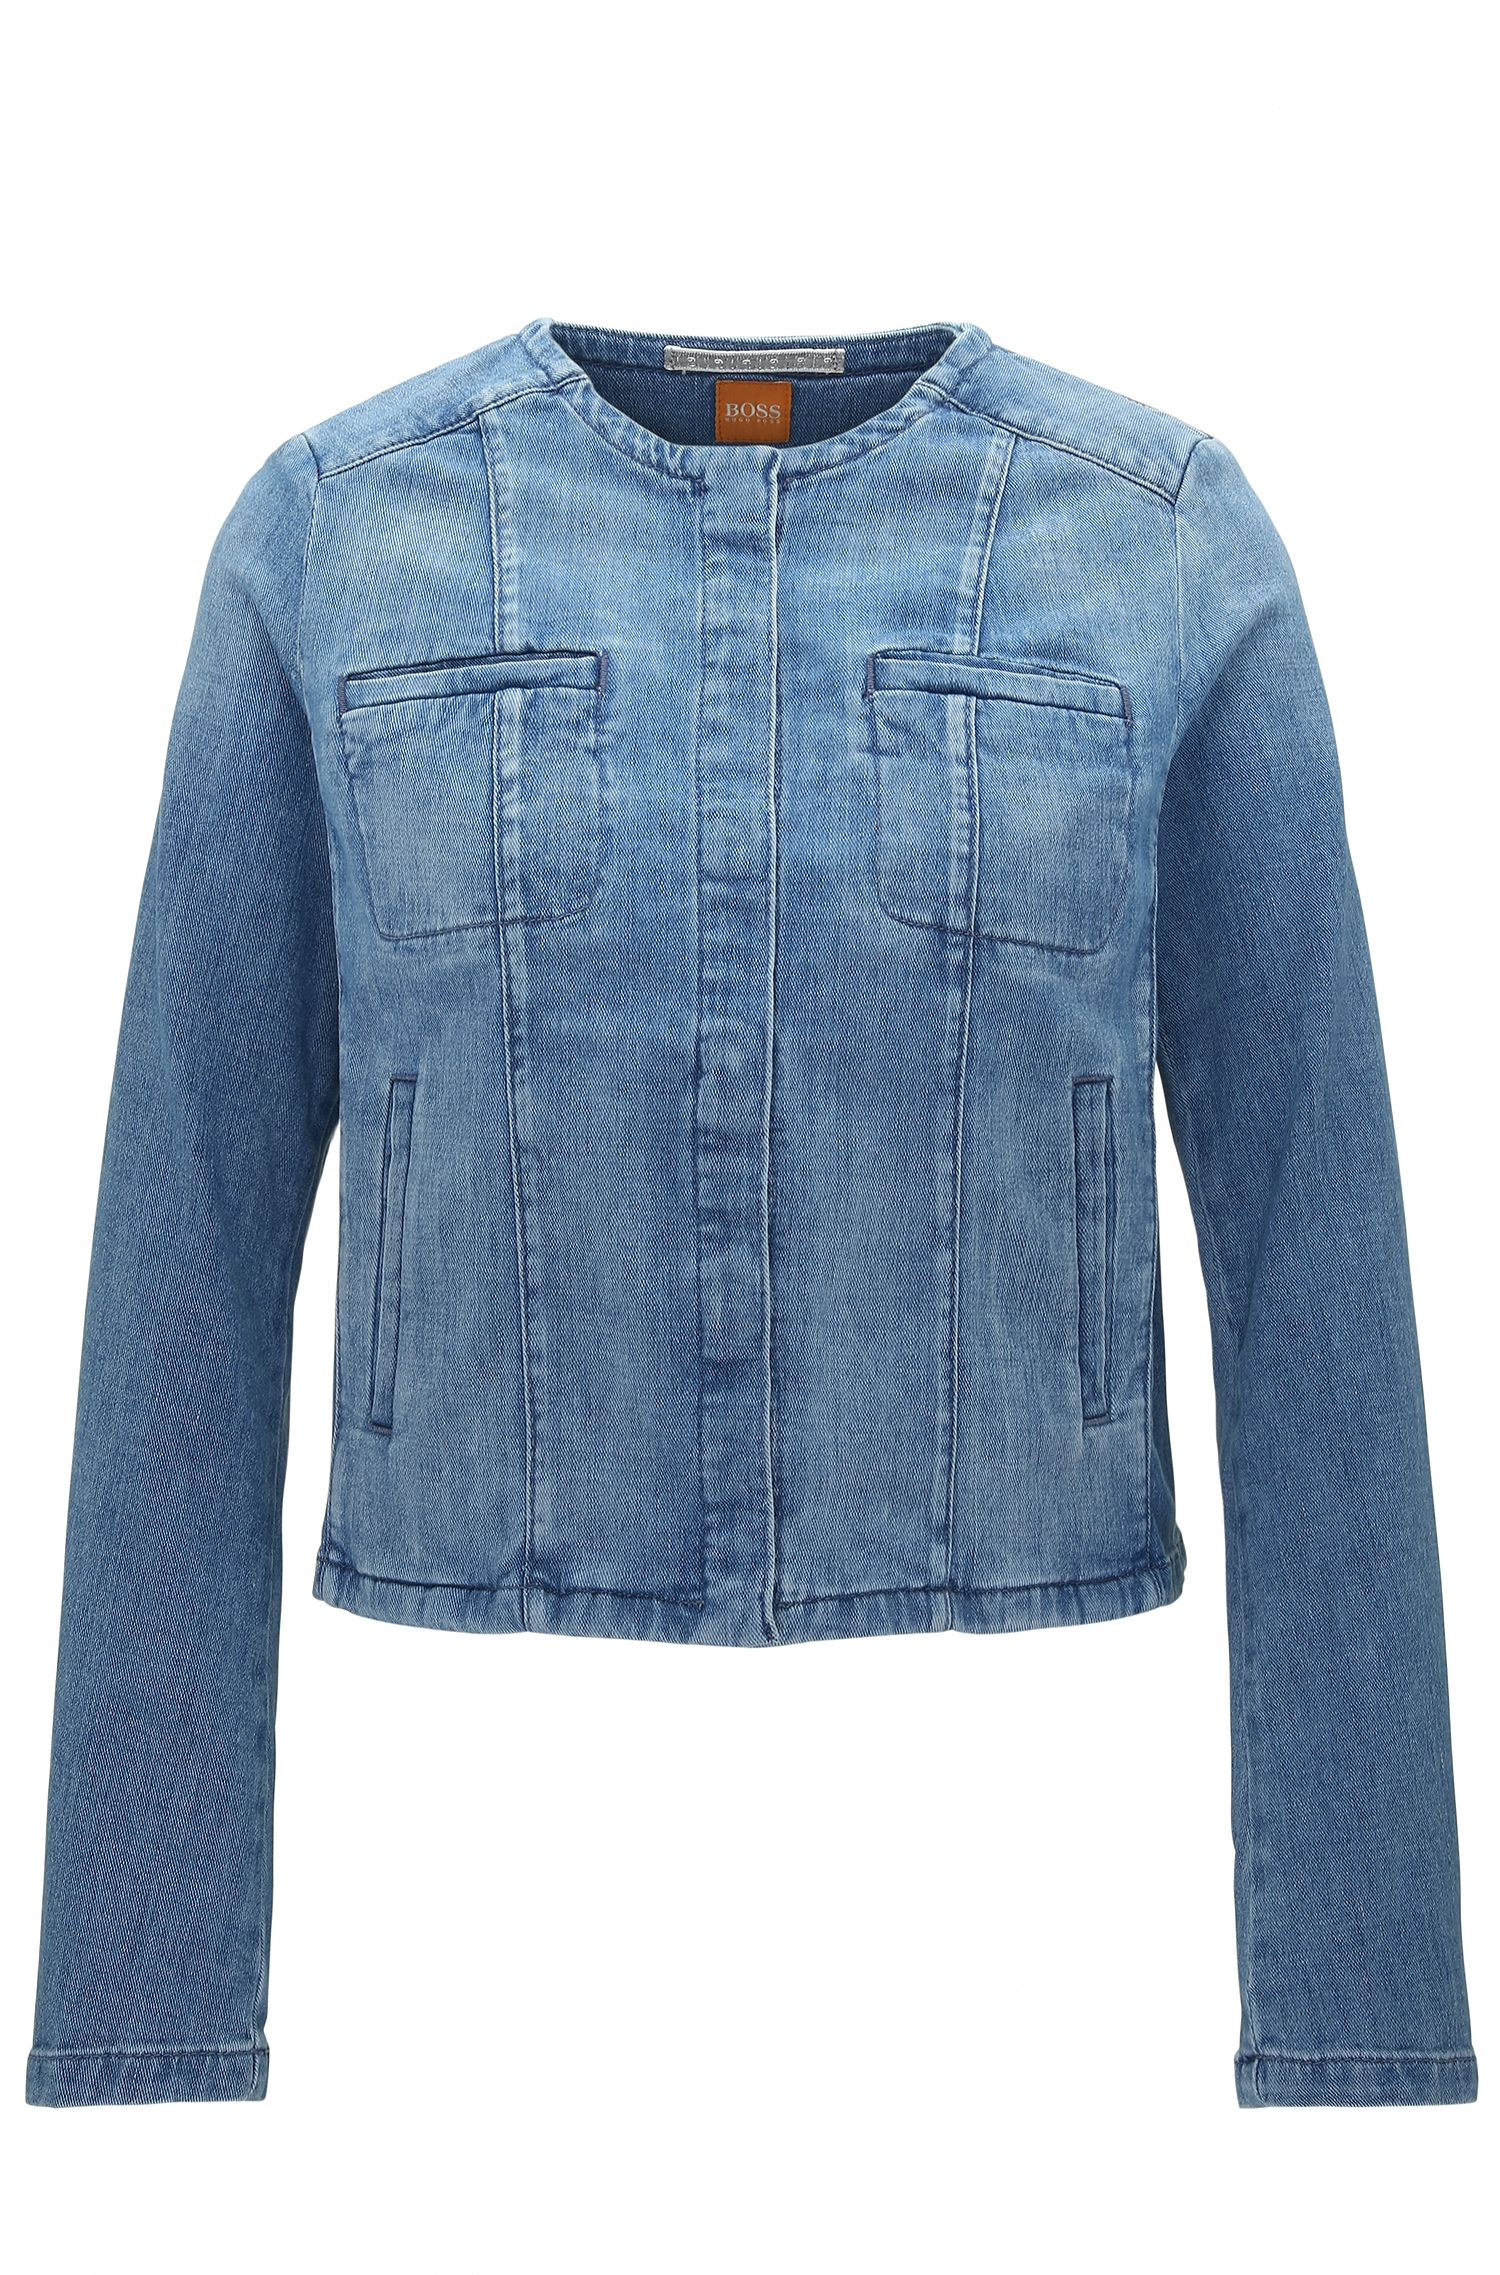 Regular-fit jacket in stone-washed denim